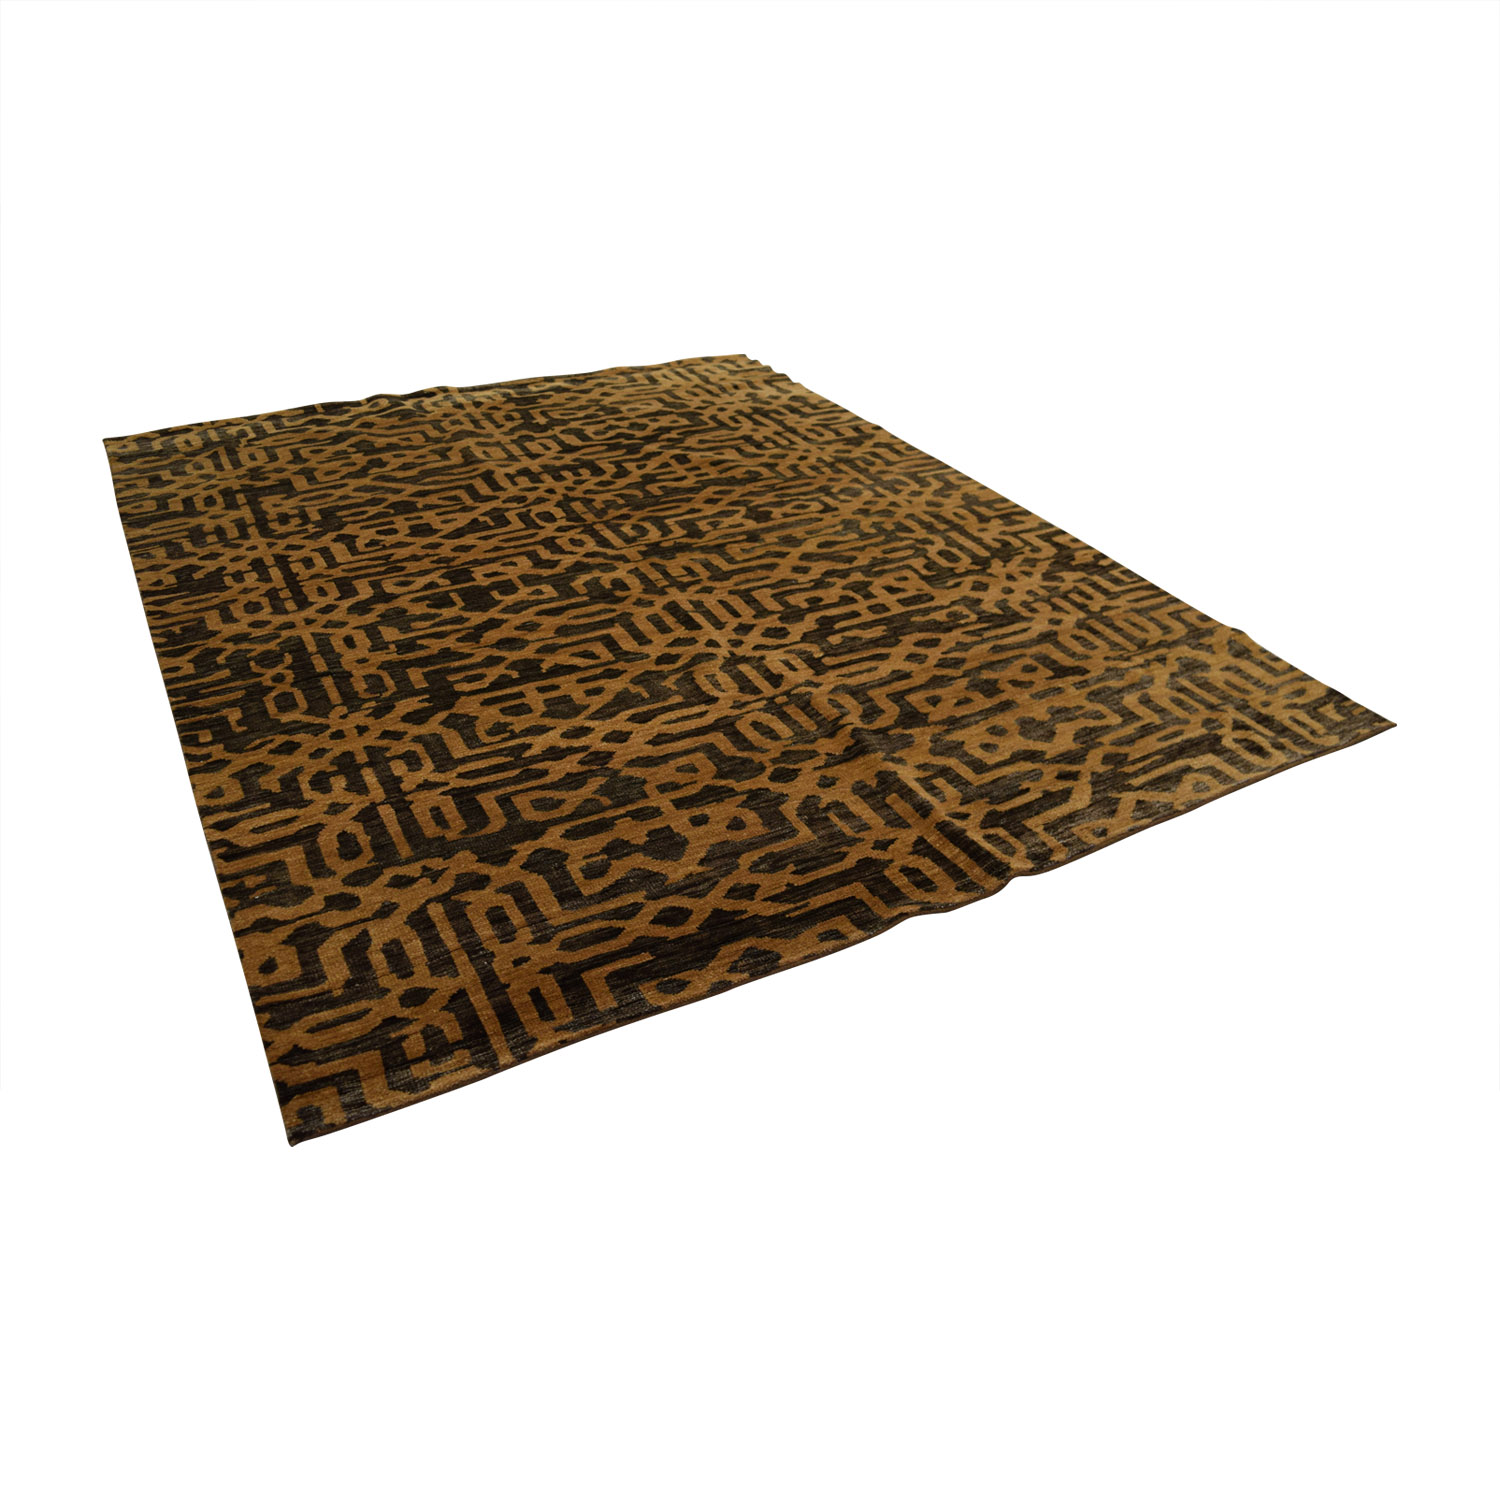 Obeetee Brown Tan Rug / Rugs